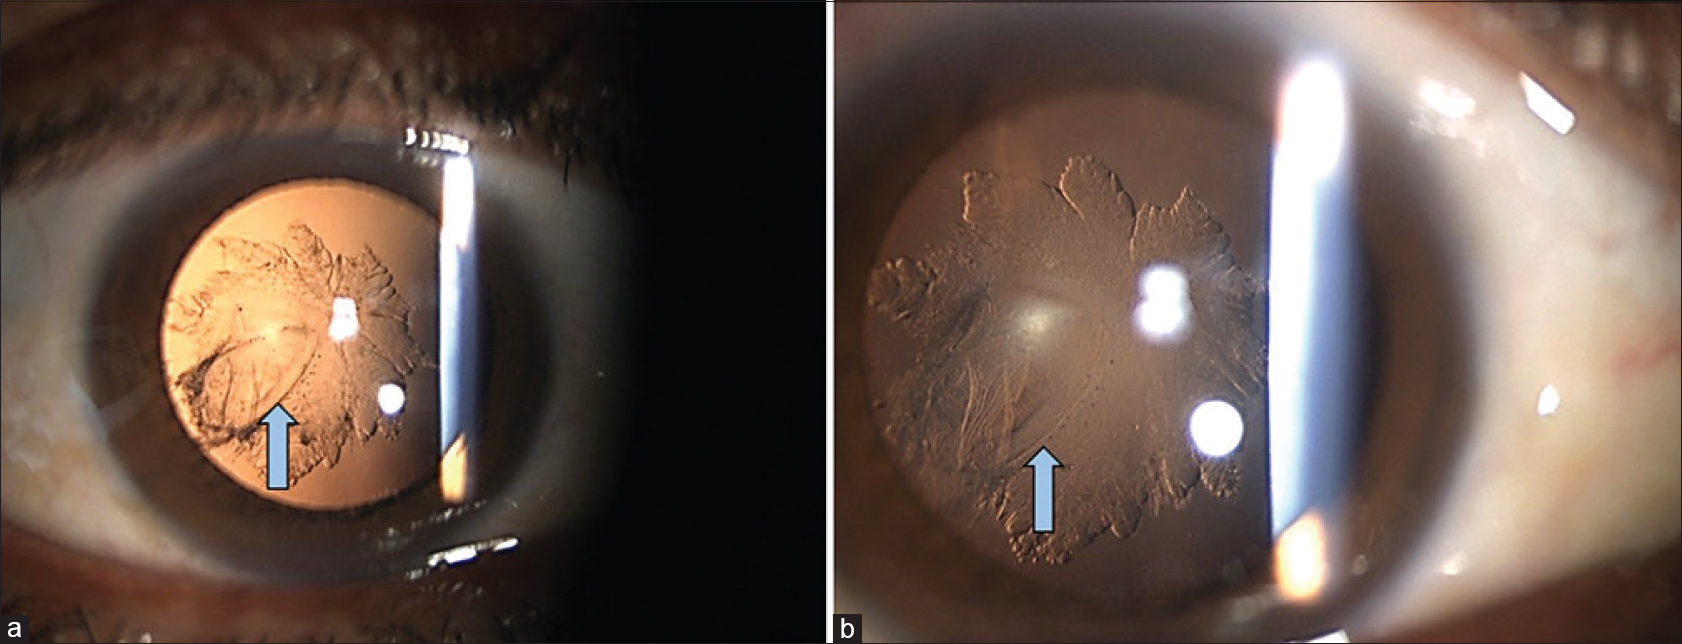 Figure 1: Retro-illumination images showing iatrogenic cataract and defect in posterior capsule (arrows, a). Rosette pattern is appreciable in high magnification images (b)